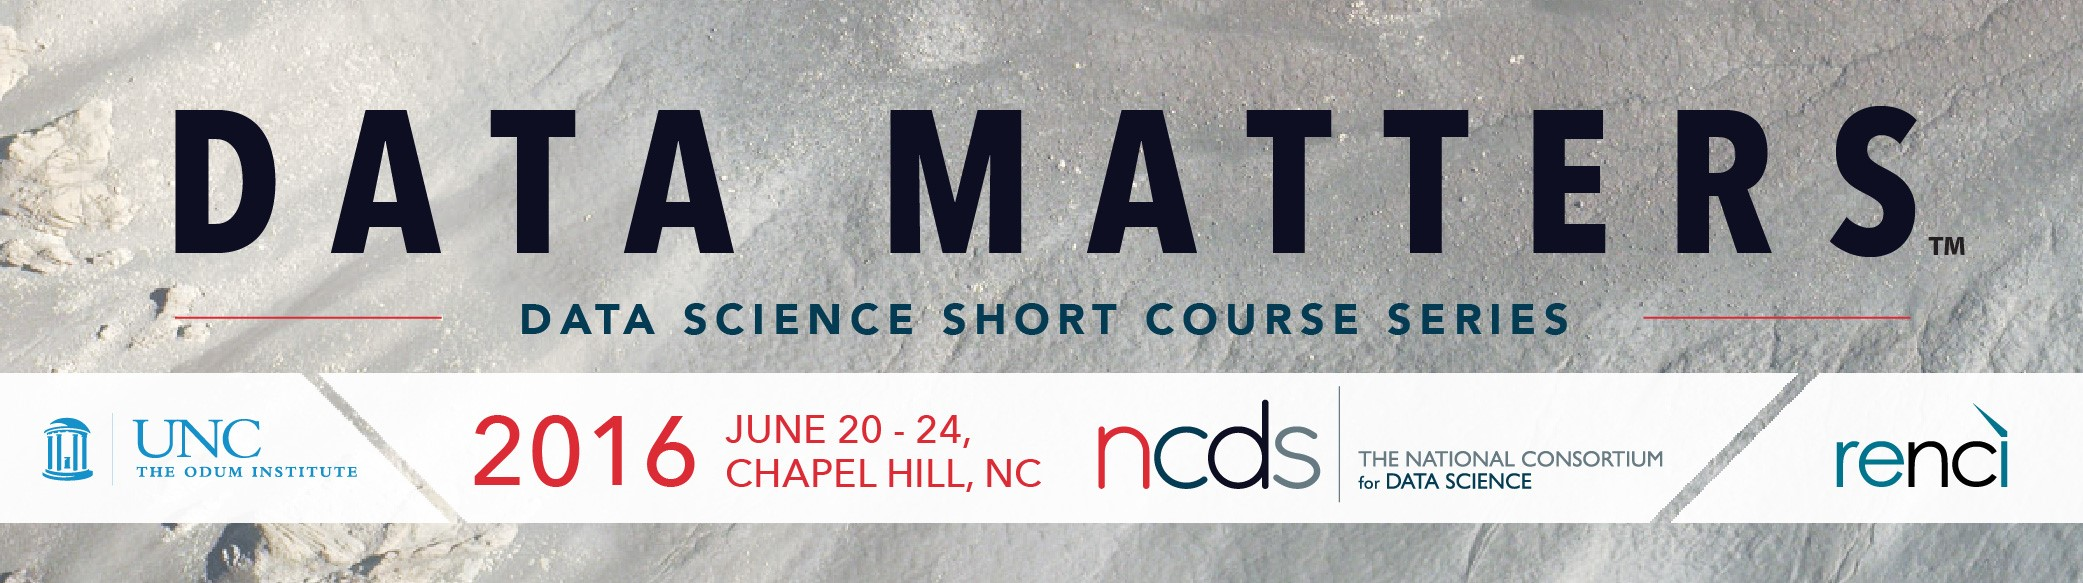 Data Matters: Data Science Short Course Series